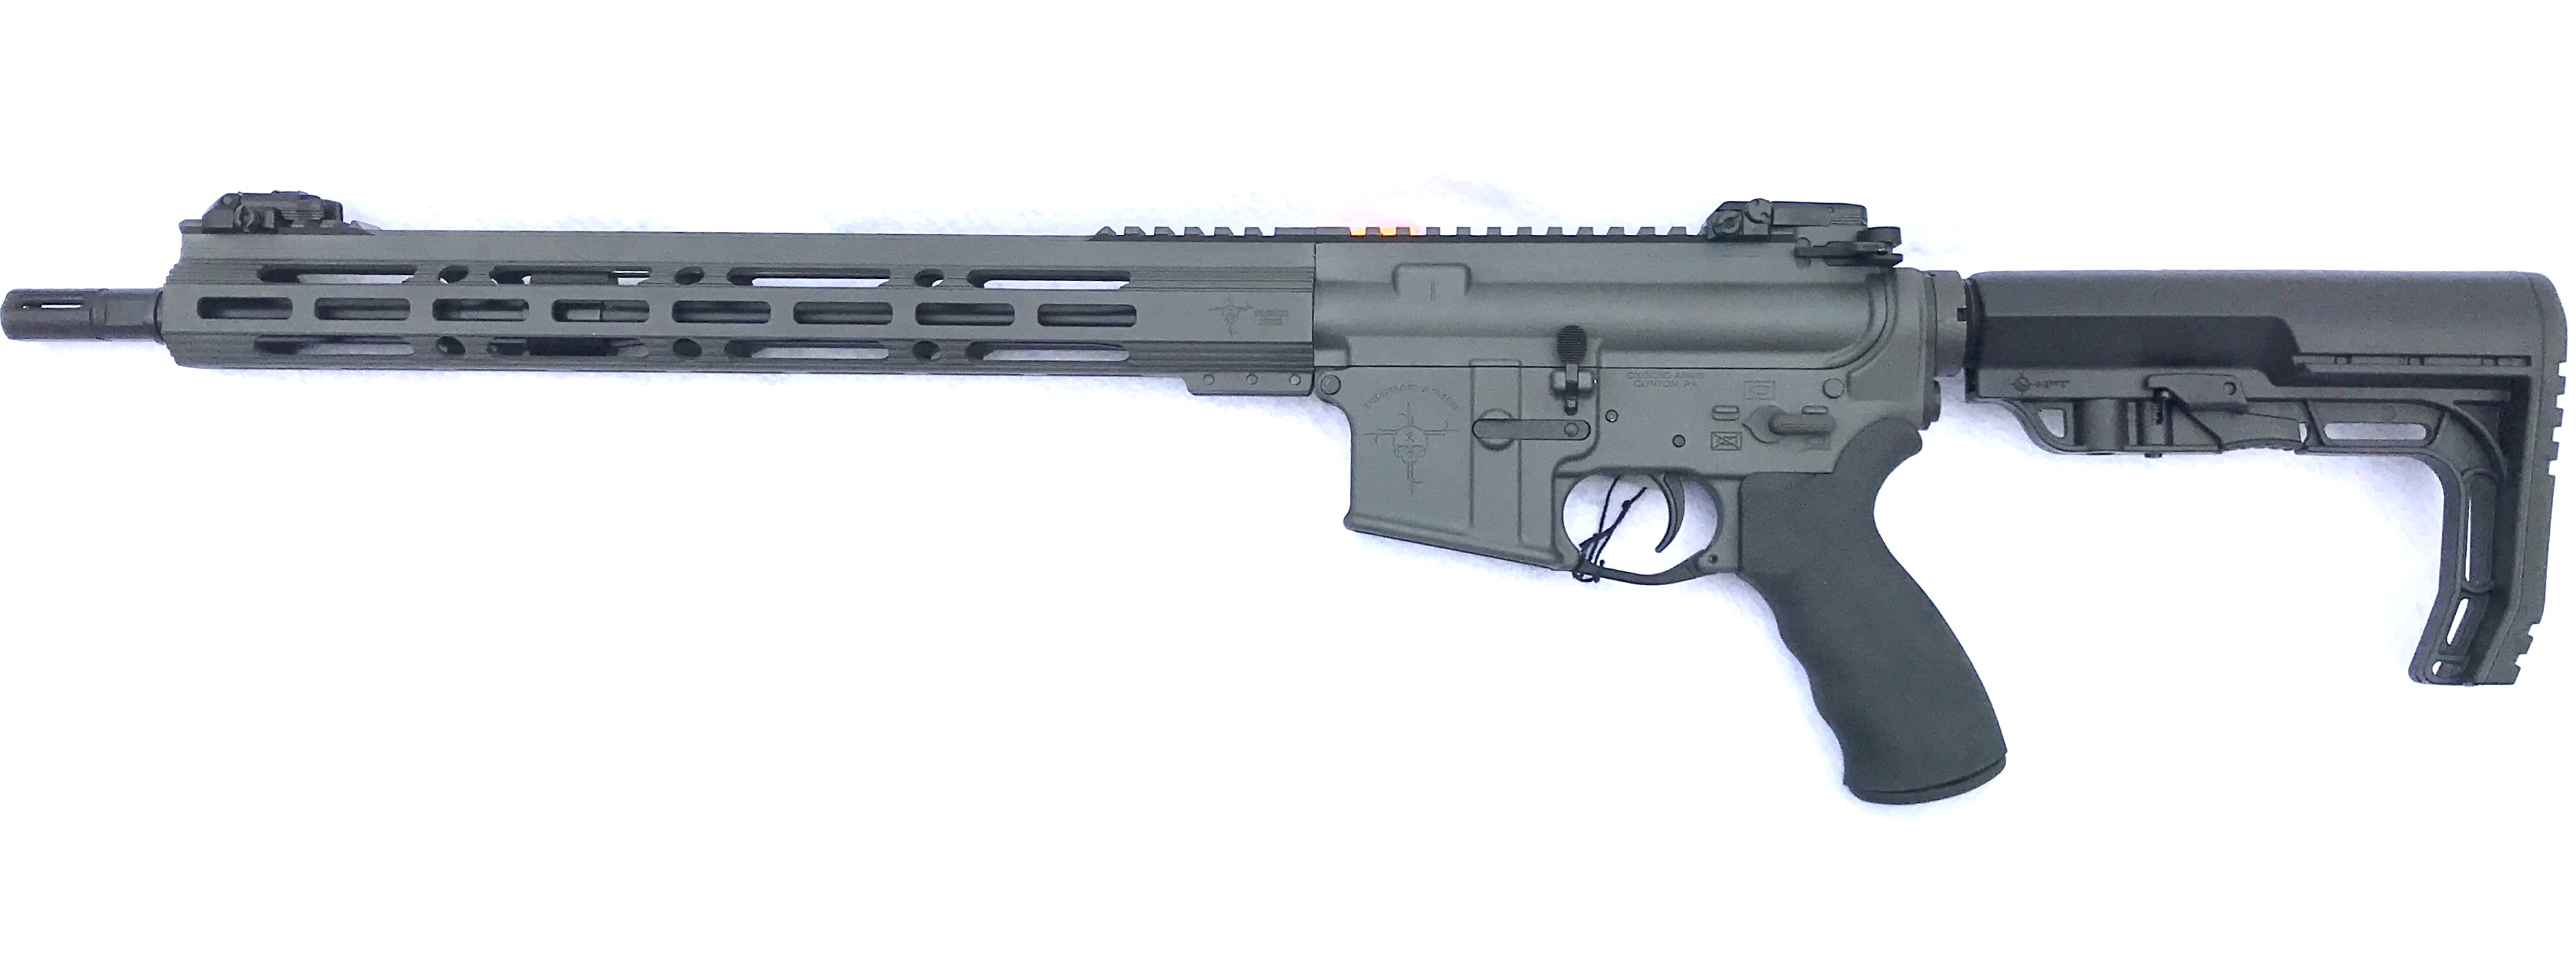 exo rifle sig dark gray